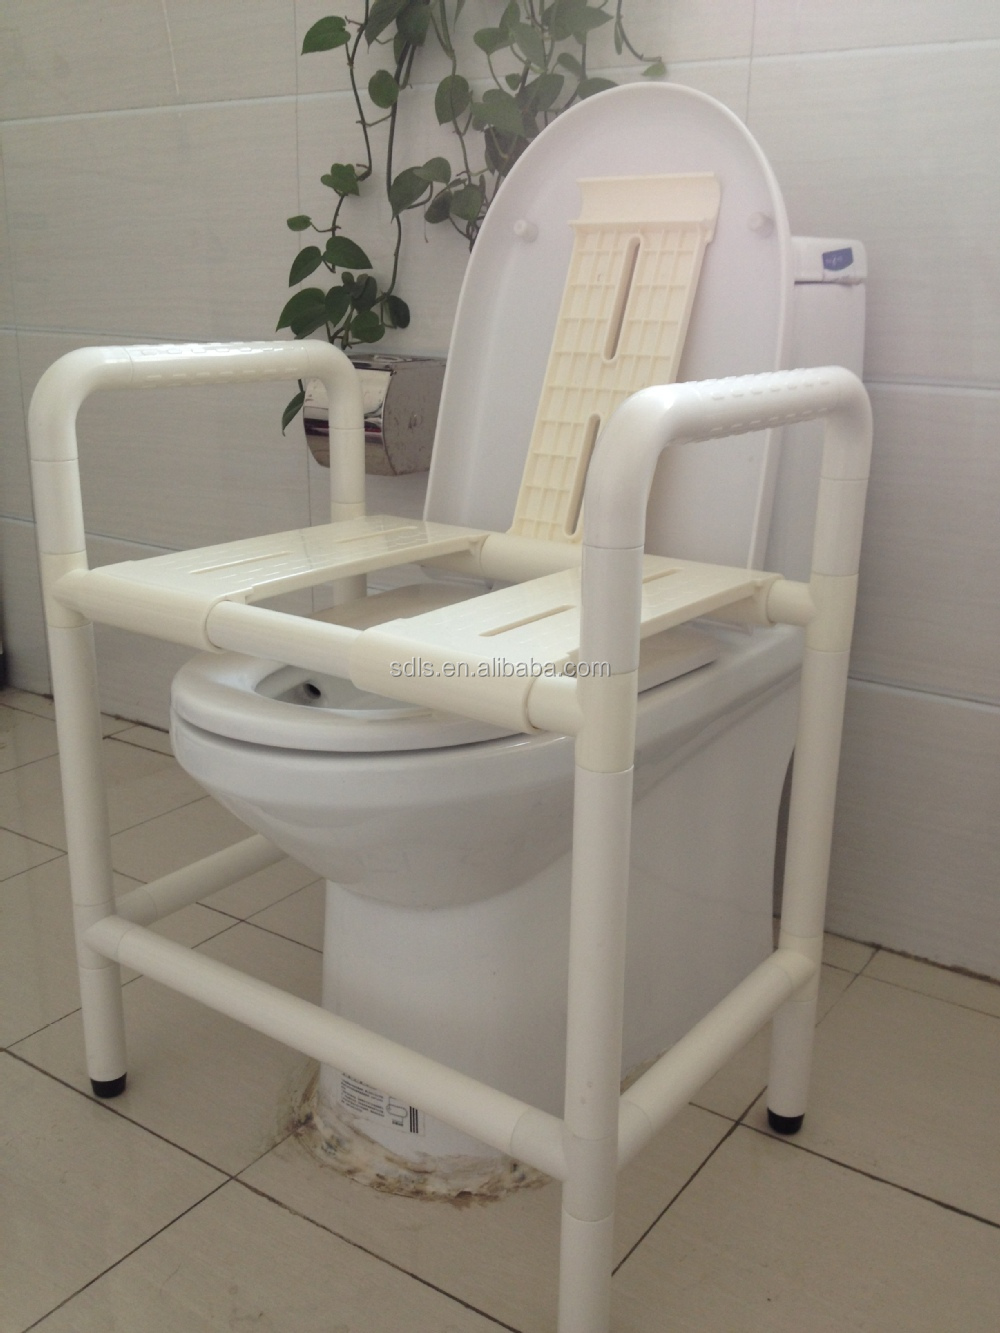 Handicap Bath Chairs For Disabled Buy Bath Chairs For